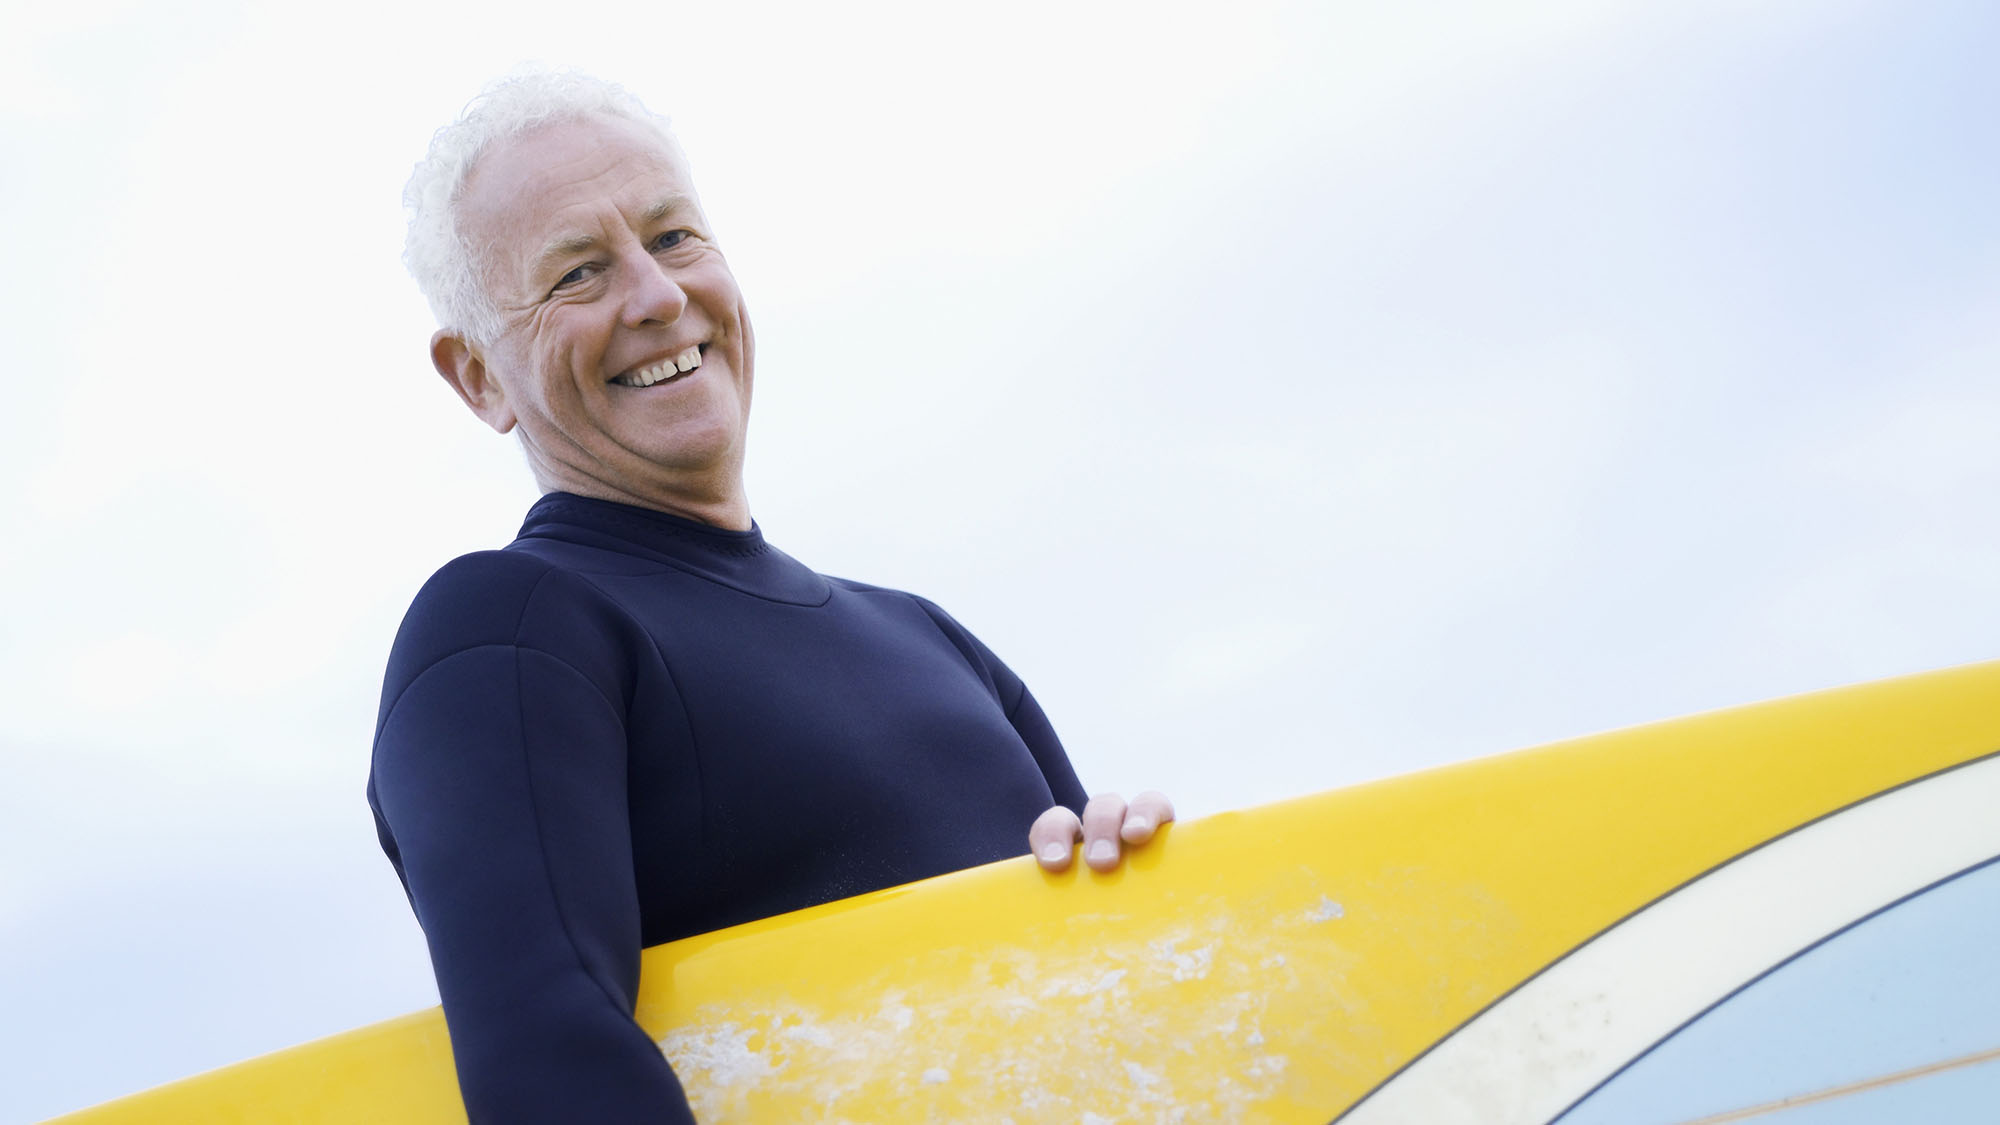 Surfing in your 60s – it can be life-changing